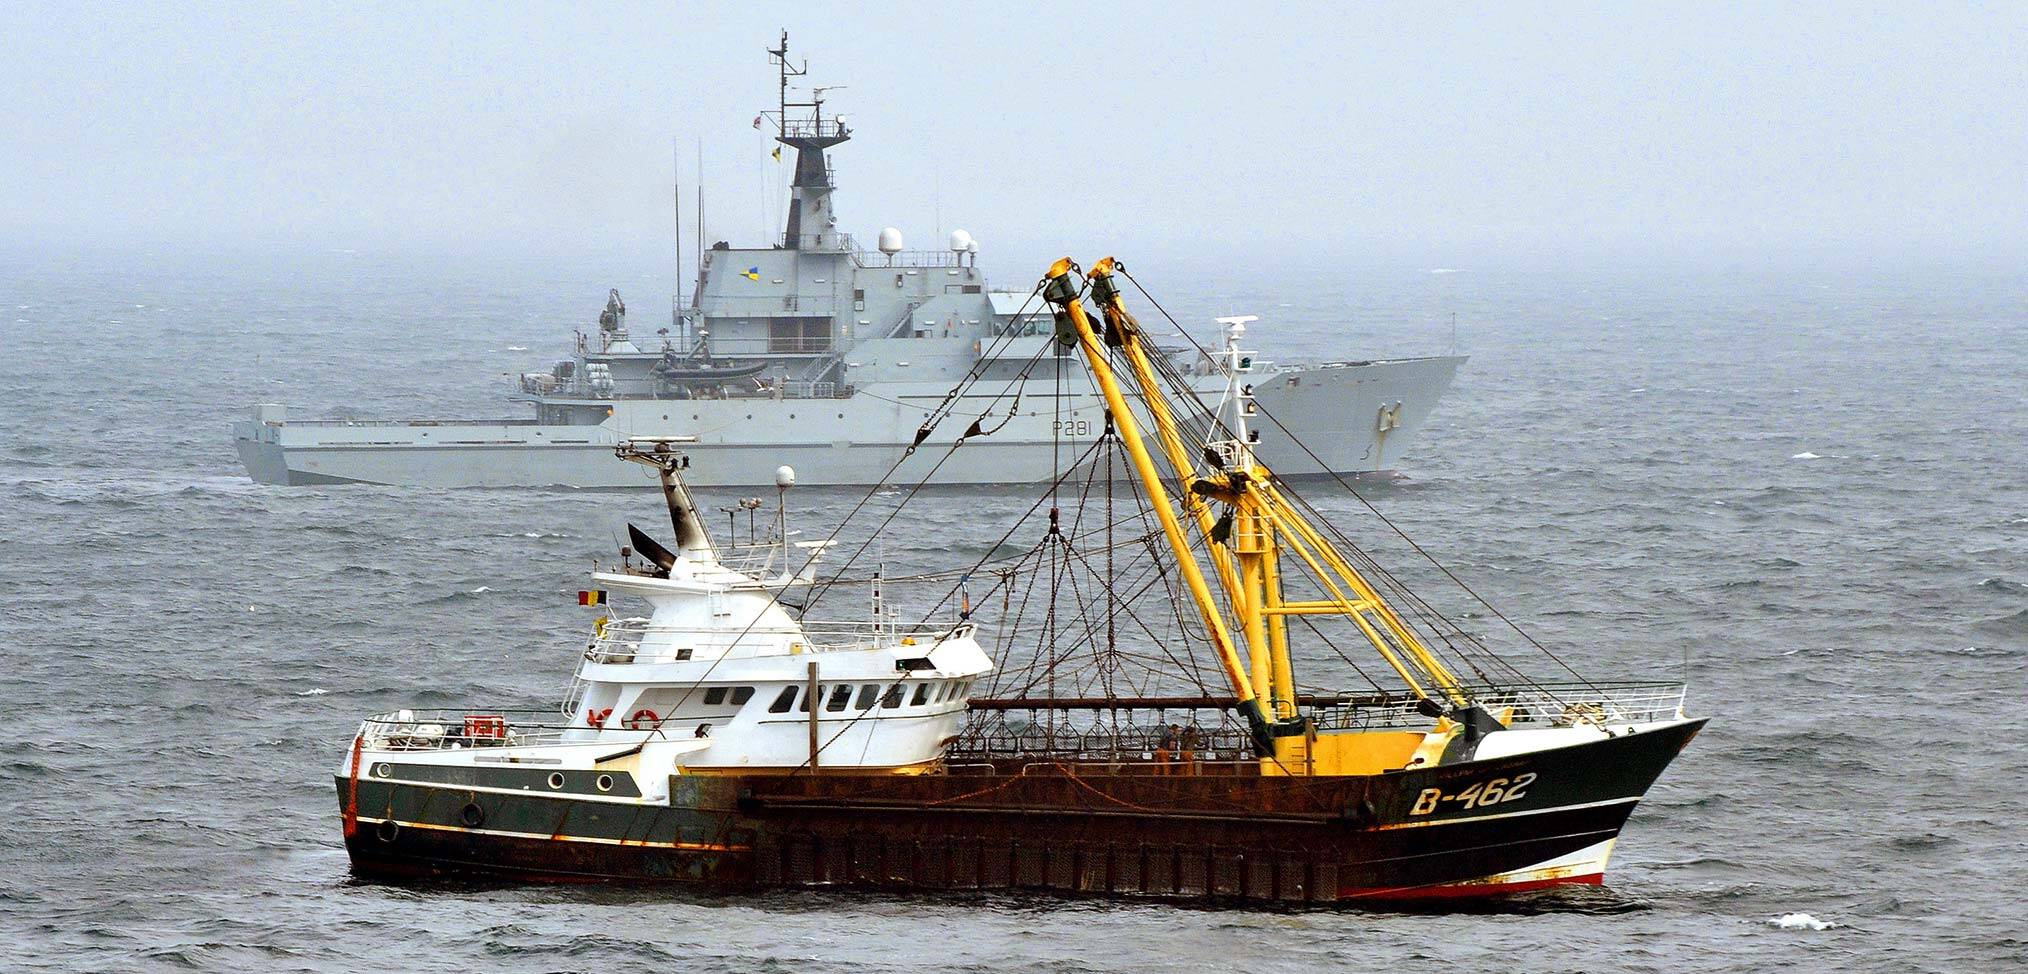 The Royal Navy – ready for a measured response to Brexit fishing issues?